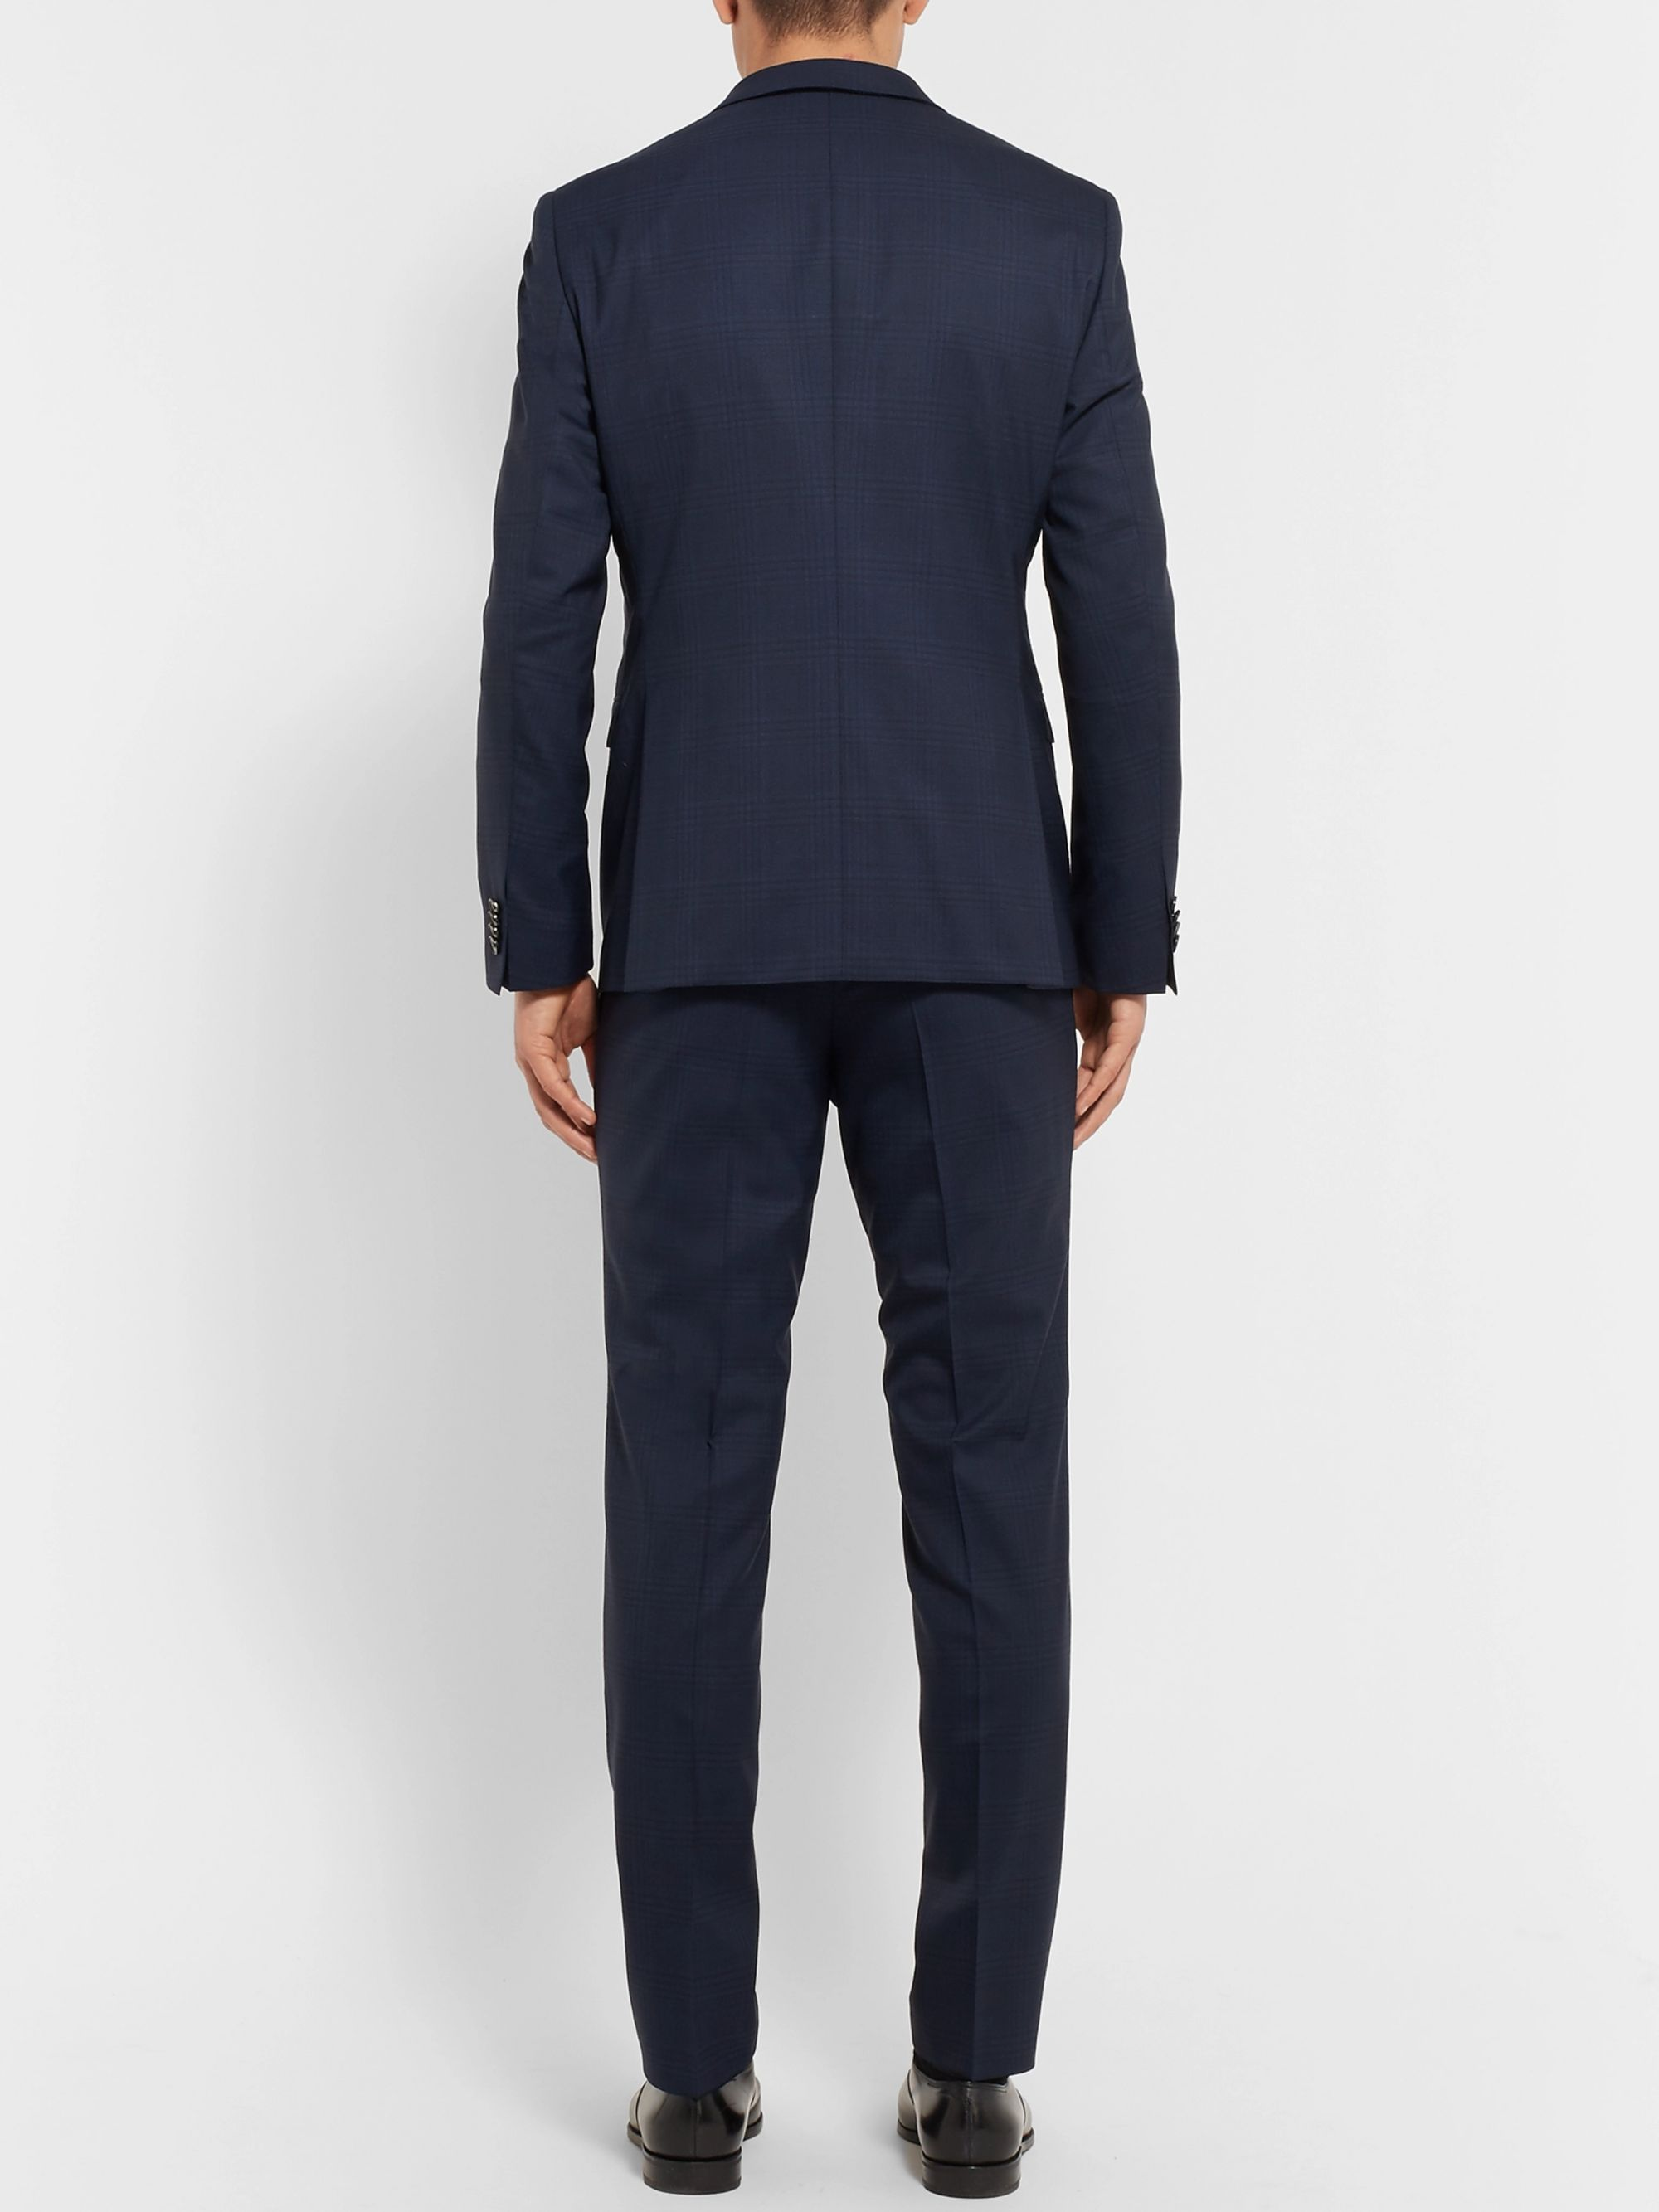 Hugo Boss Navy Reymond/Wenten Slim-Fit Checked Virgin Wool Suit